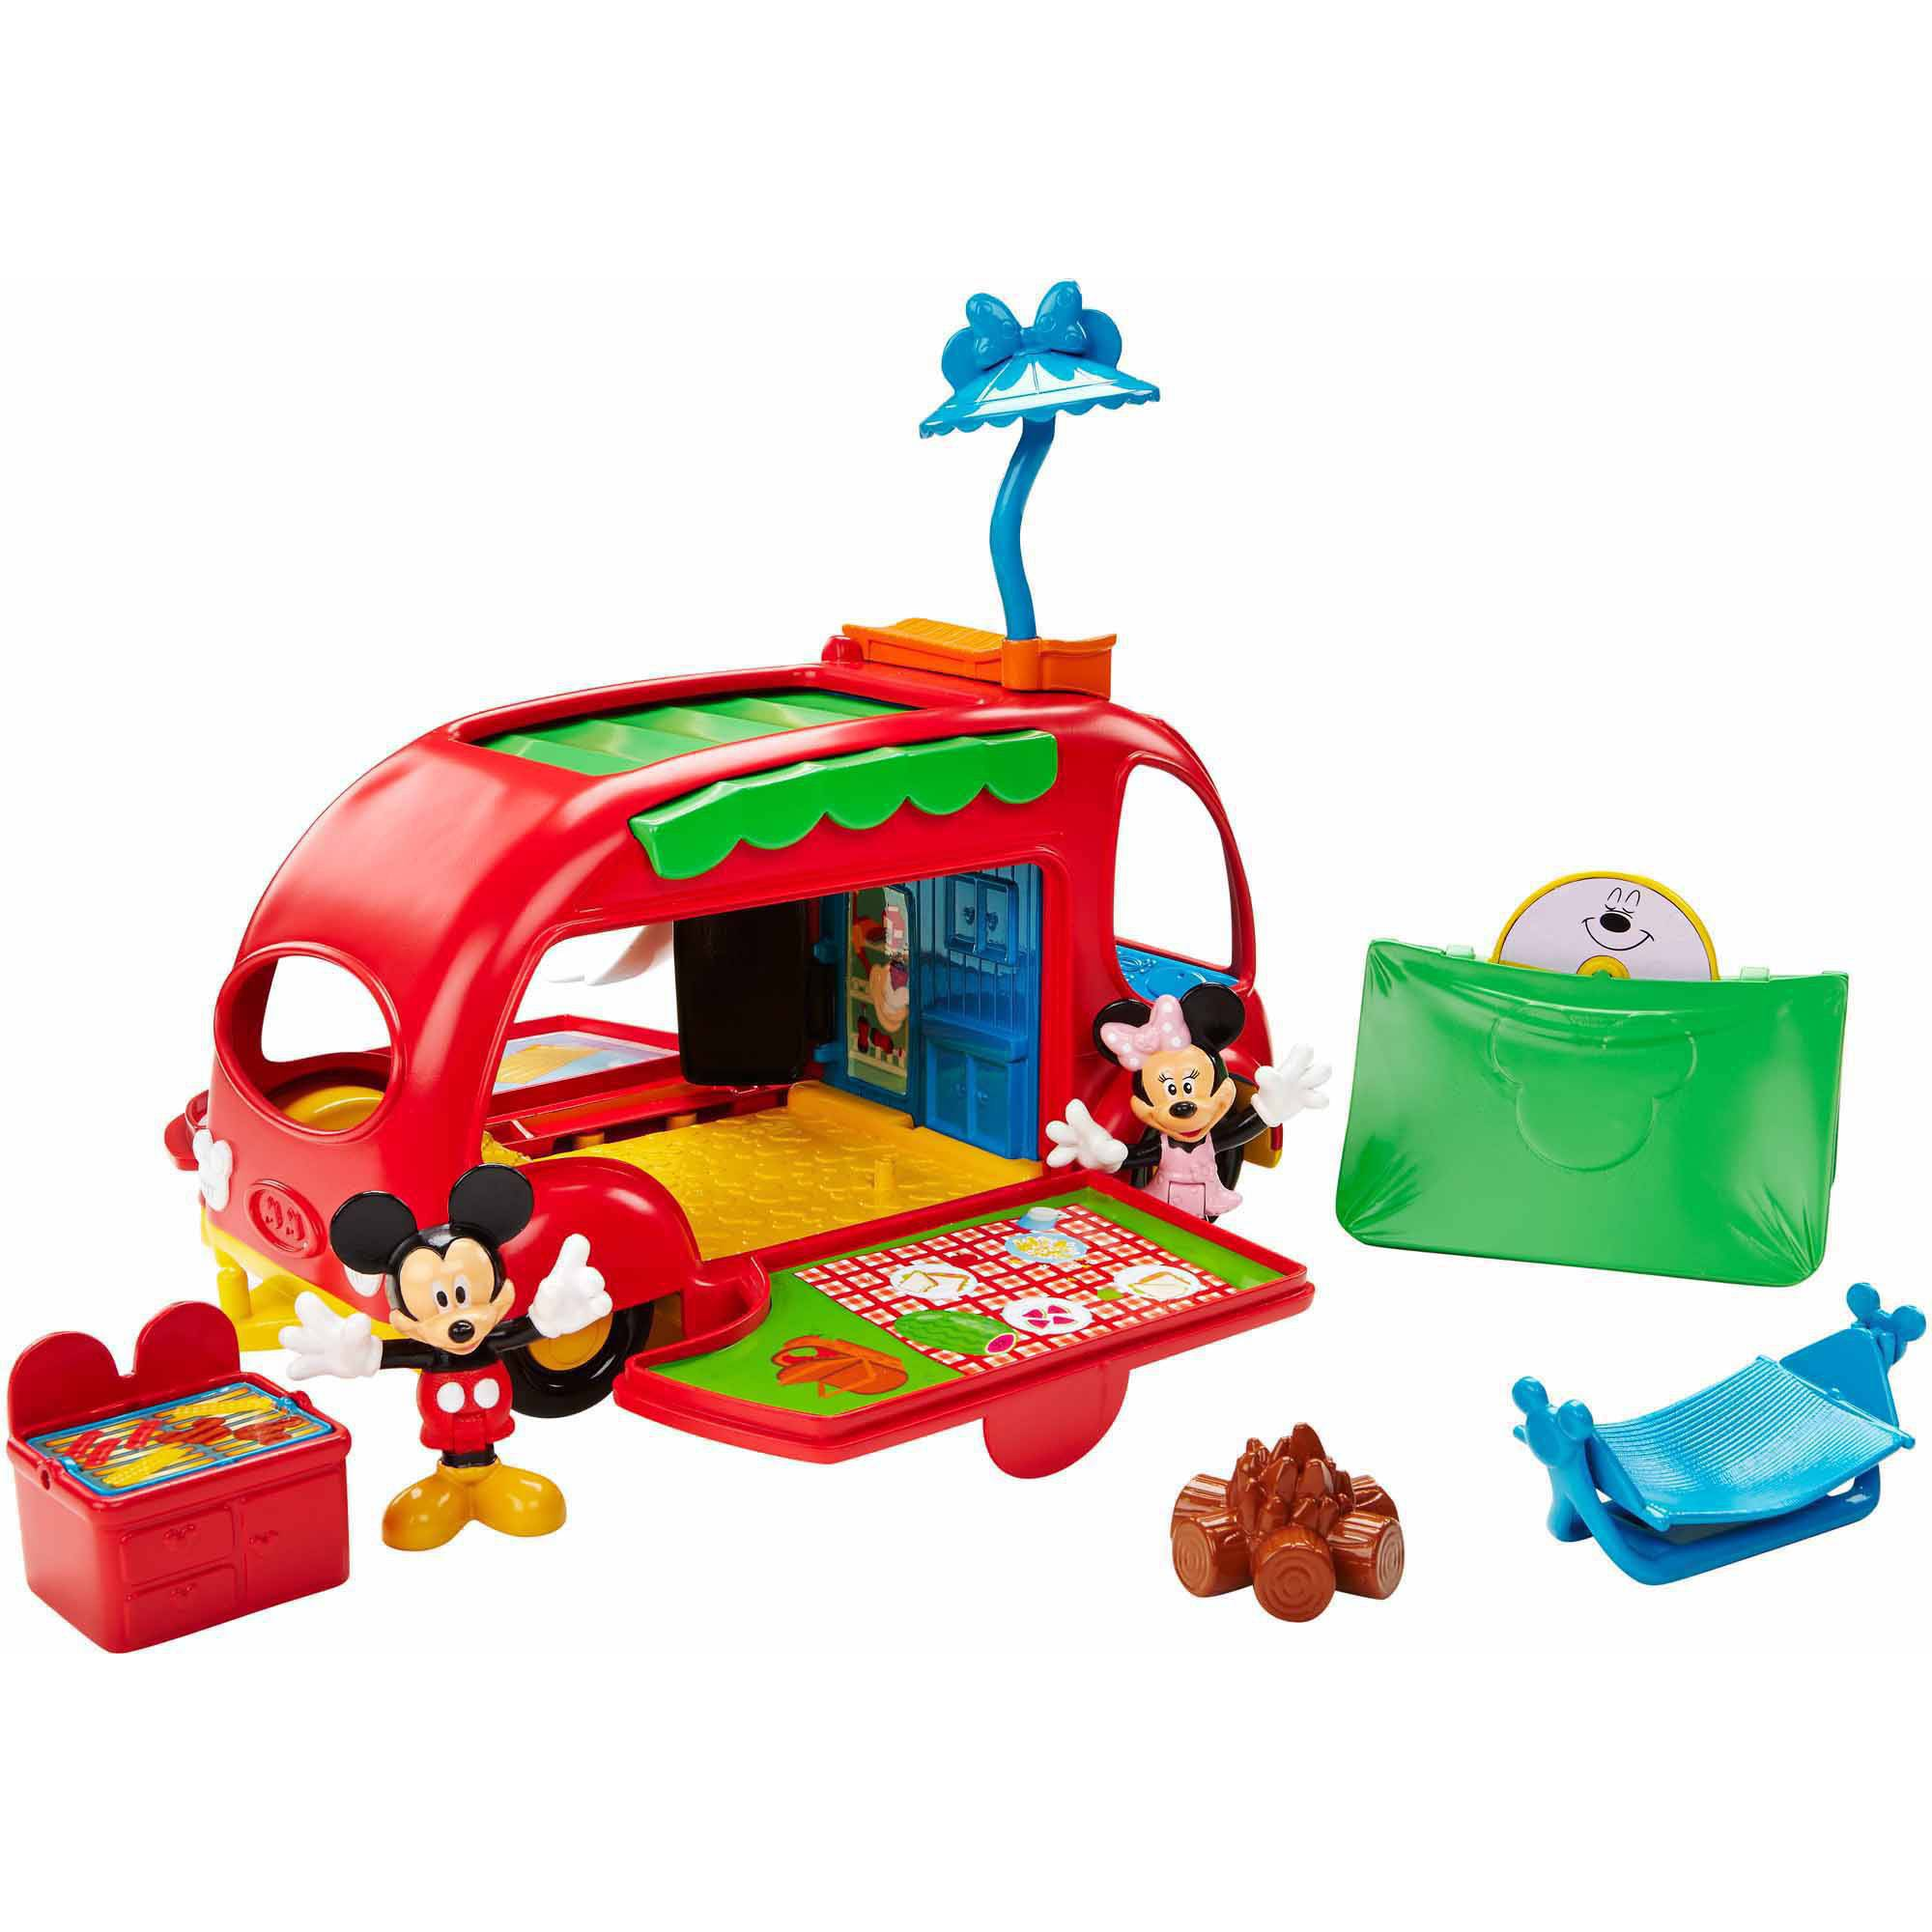 Disney Mickey Mouse Clubhouse Cruisin' Camper